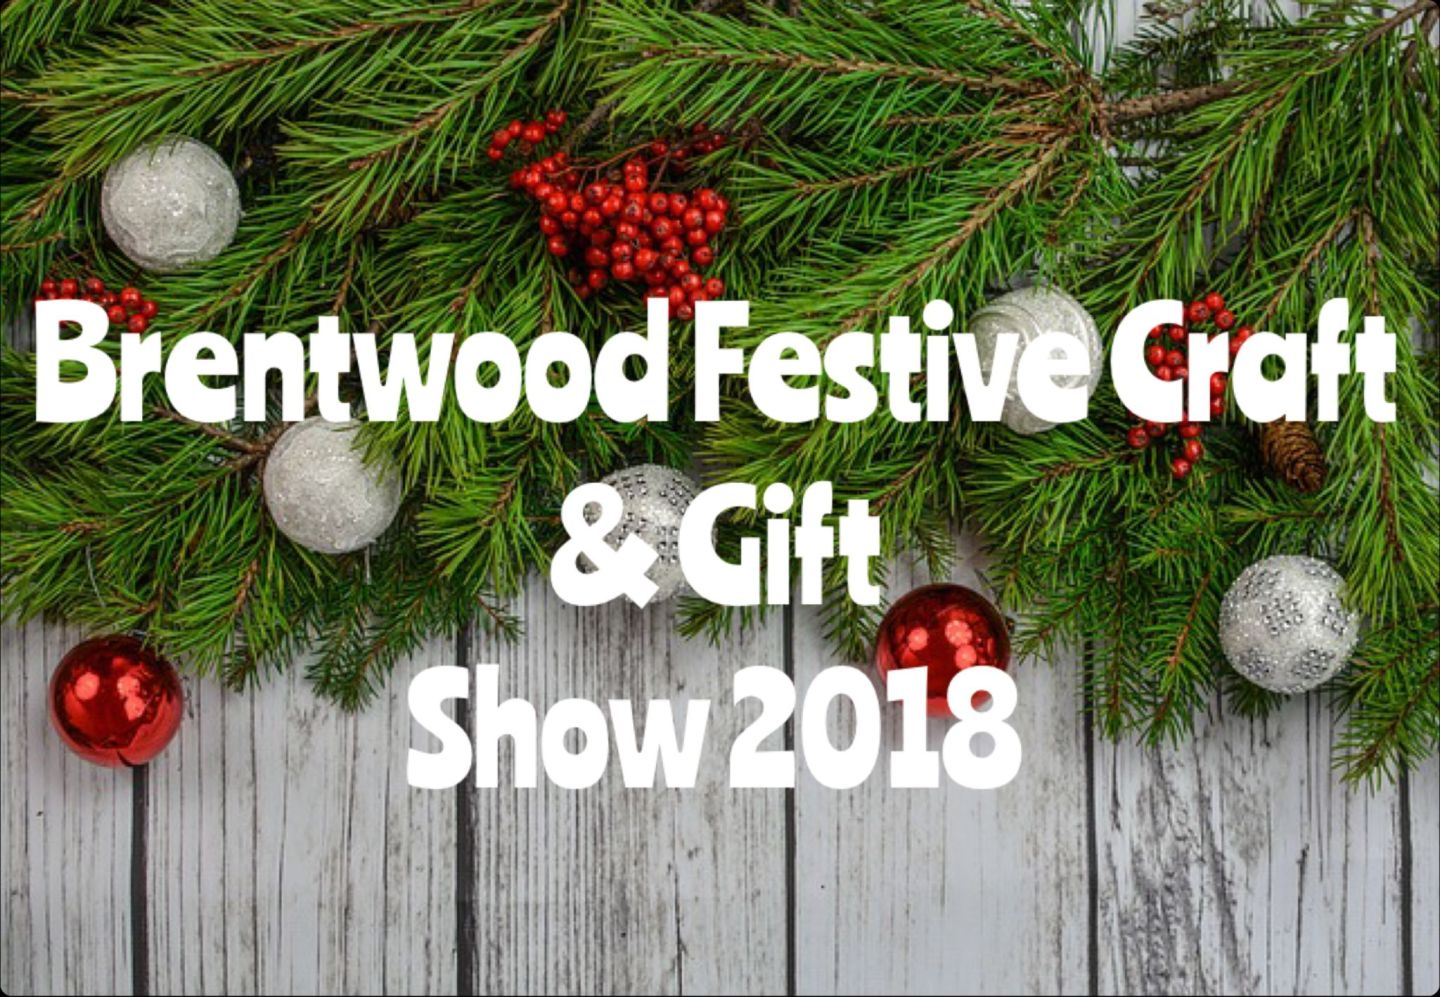 Brentwood Festive Craft & Gift Show